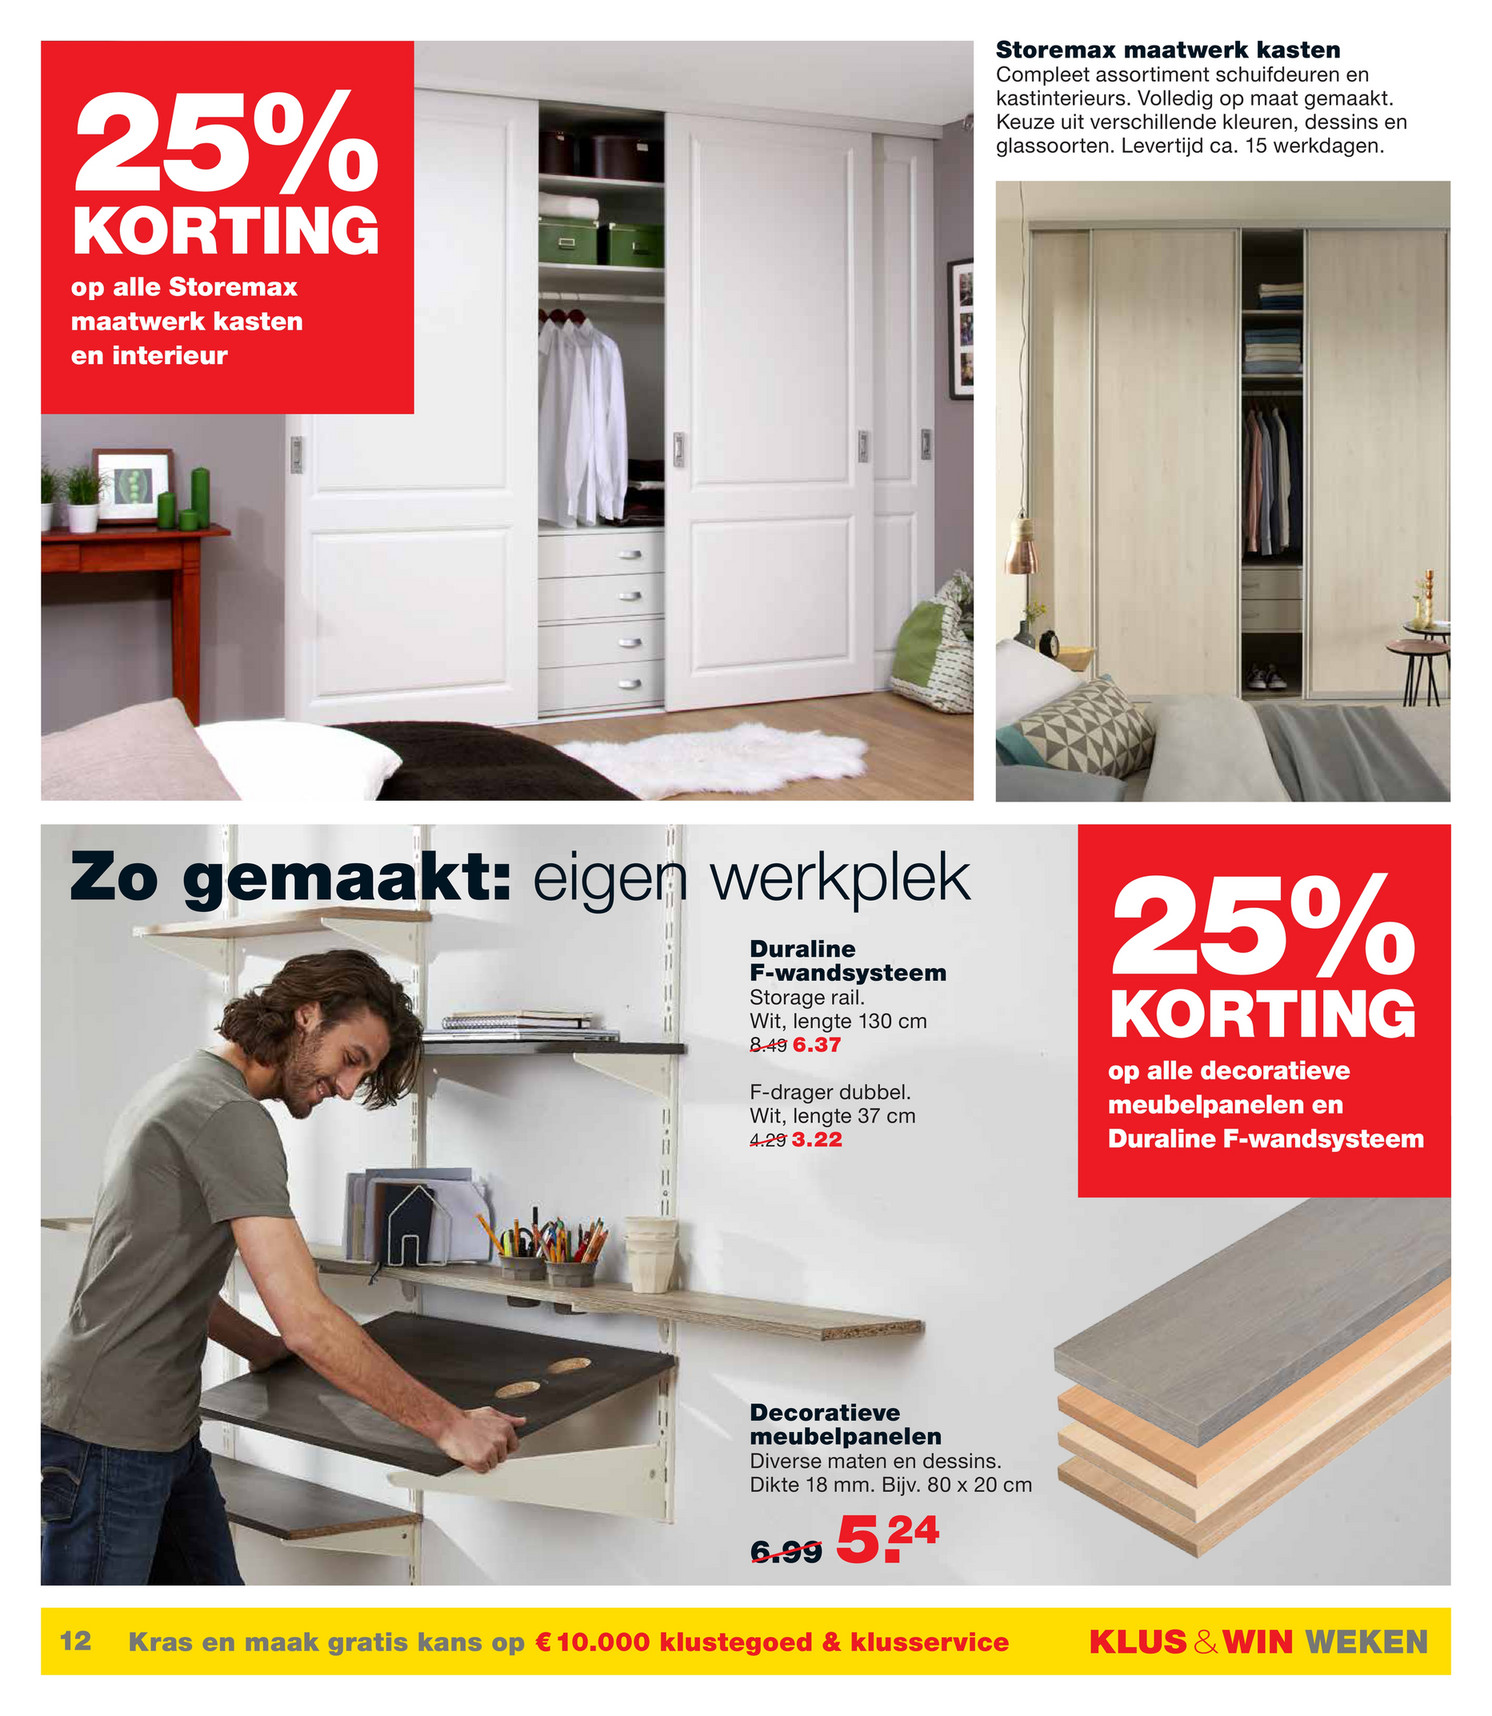 Reclame Nunl Praxis Week 36 2016 Page 12 13 Created